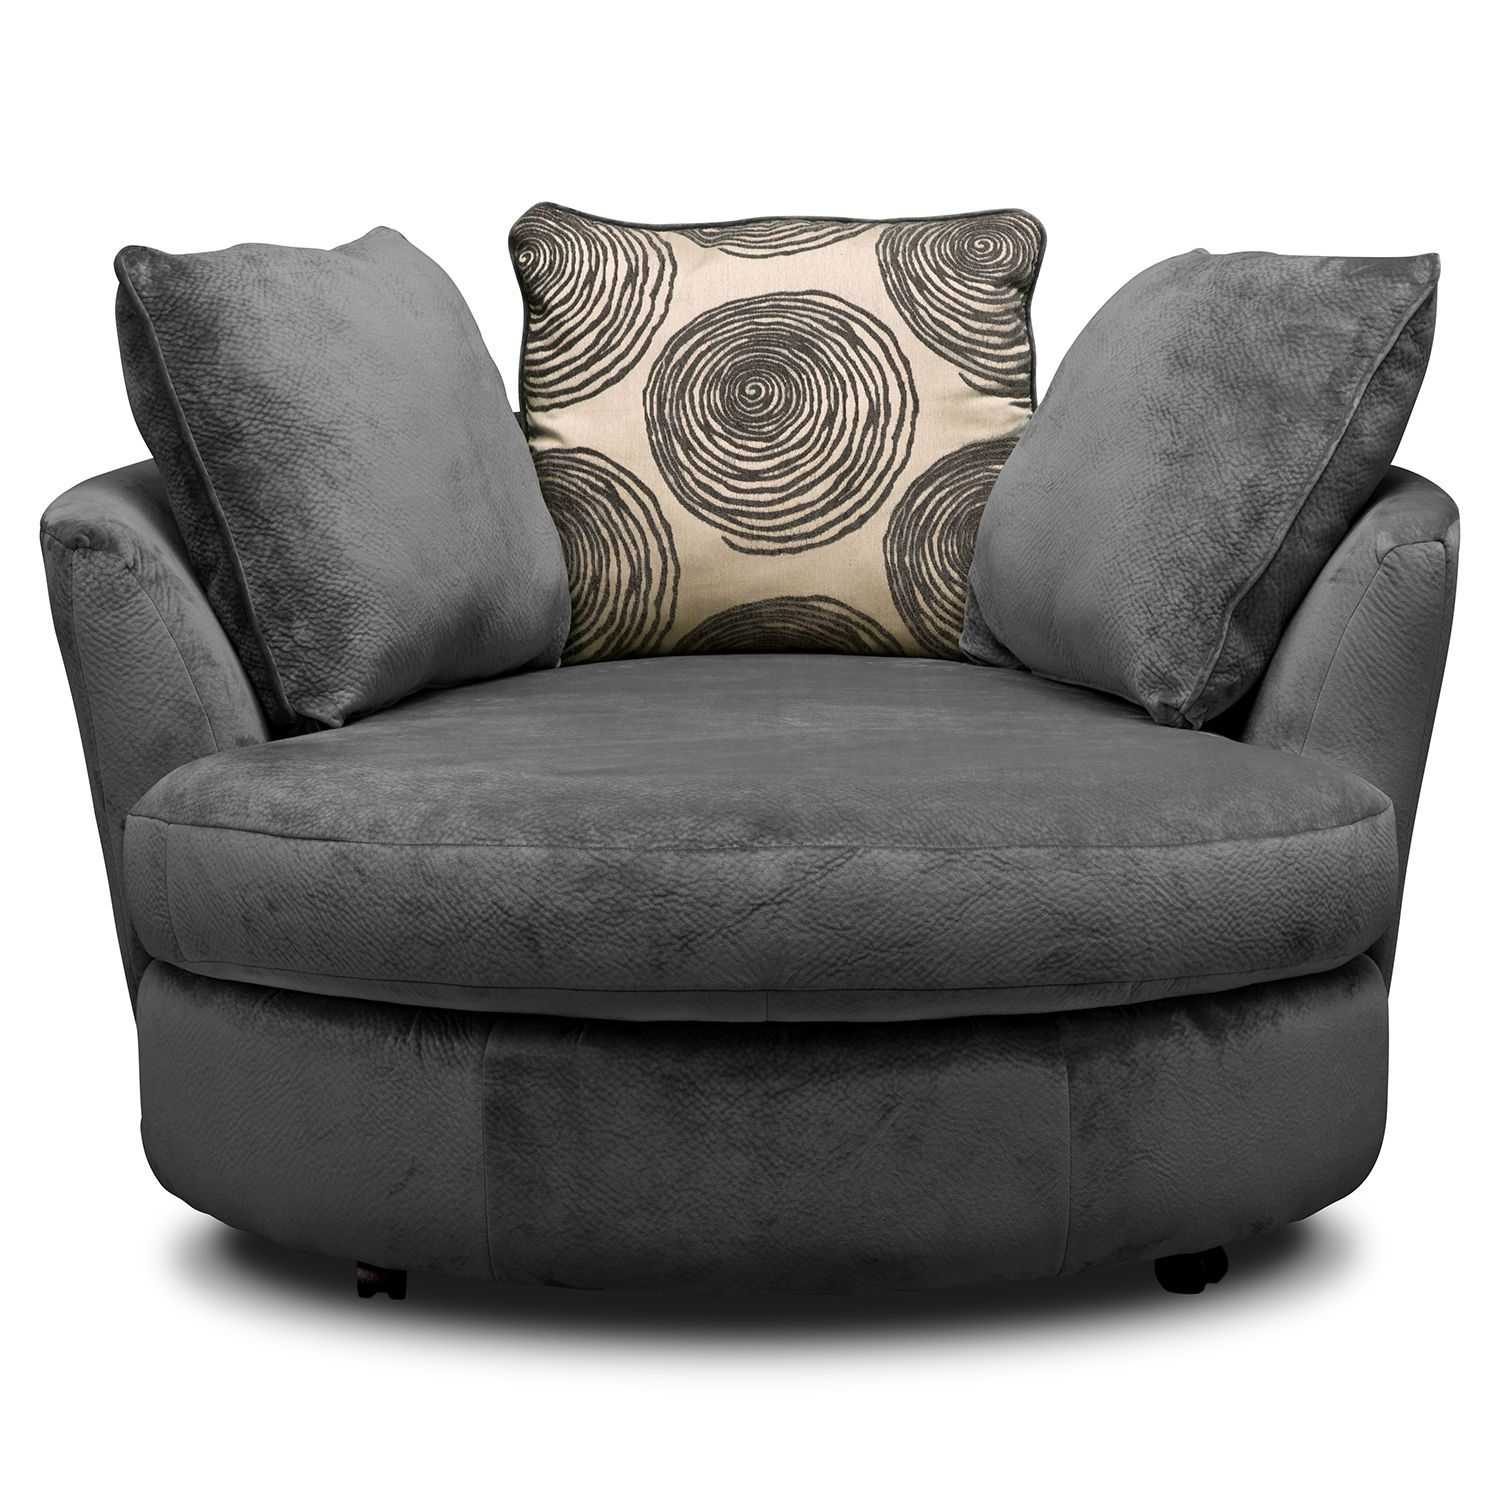 Sofas Center Round Sofa Chair For Saleshley Furniture Big Large Pertaining To Big Round Sofa Chairs (Image 10 of 15)